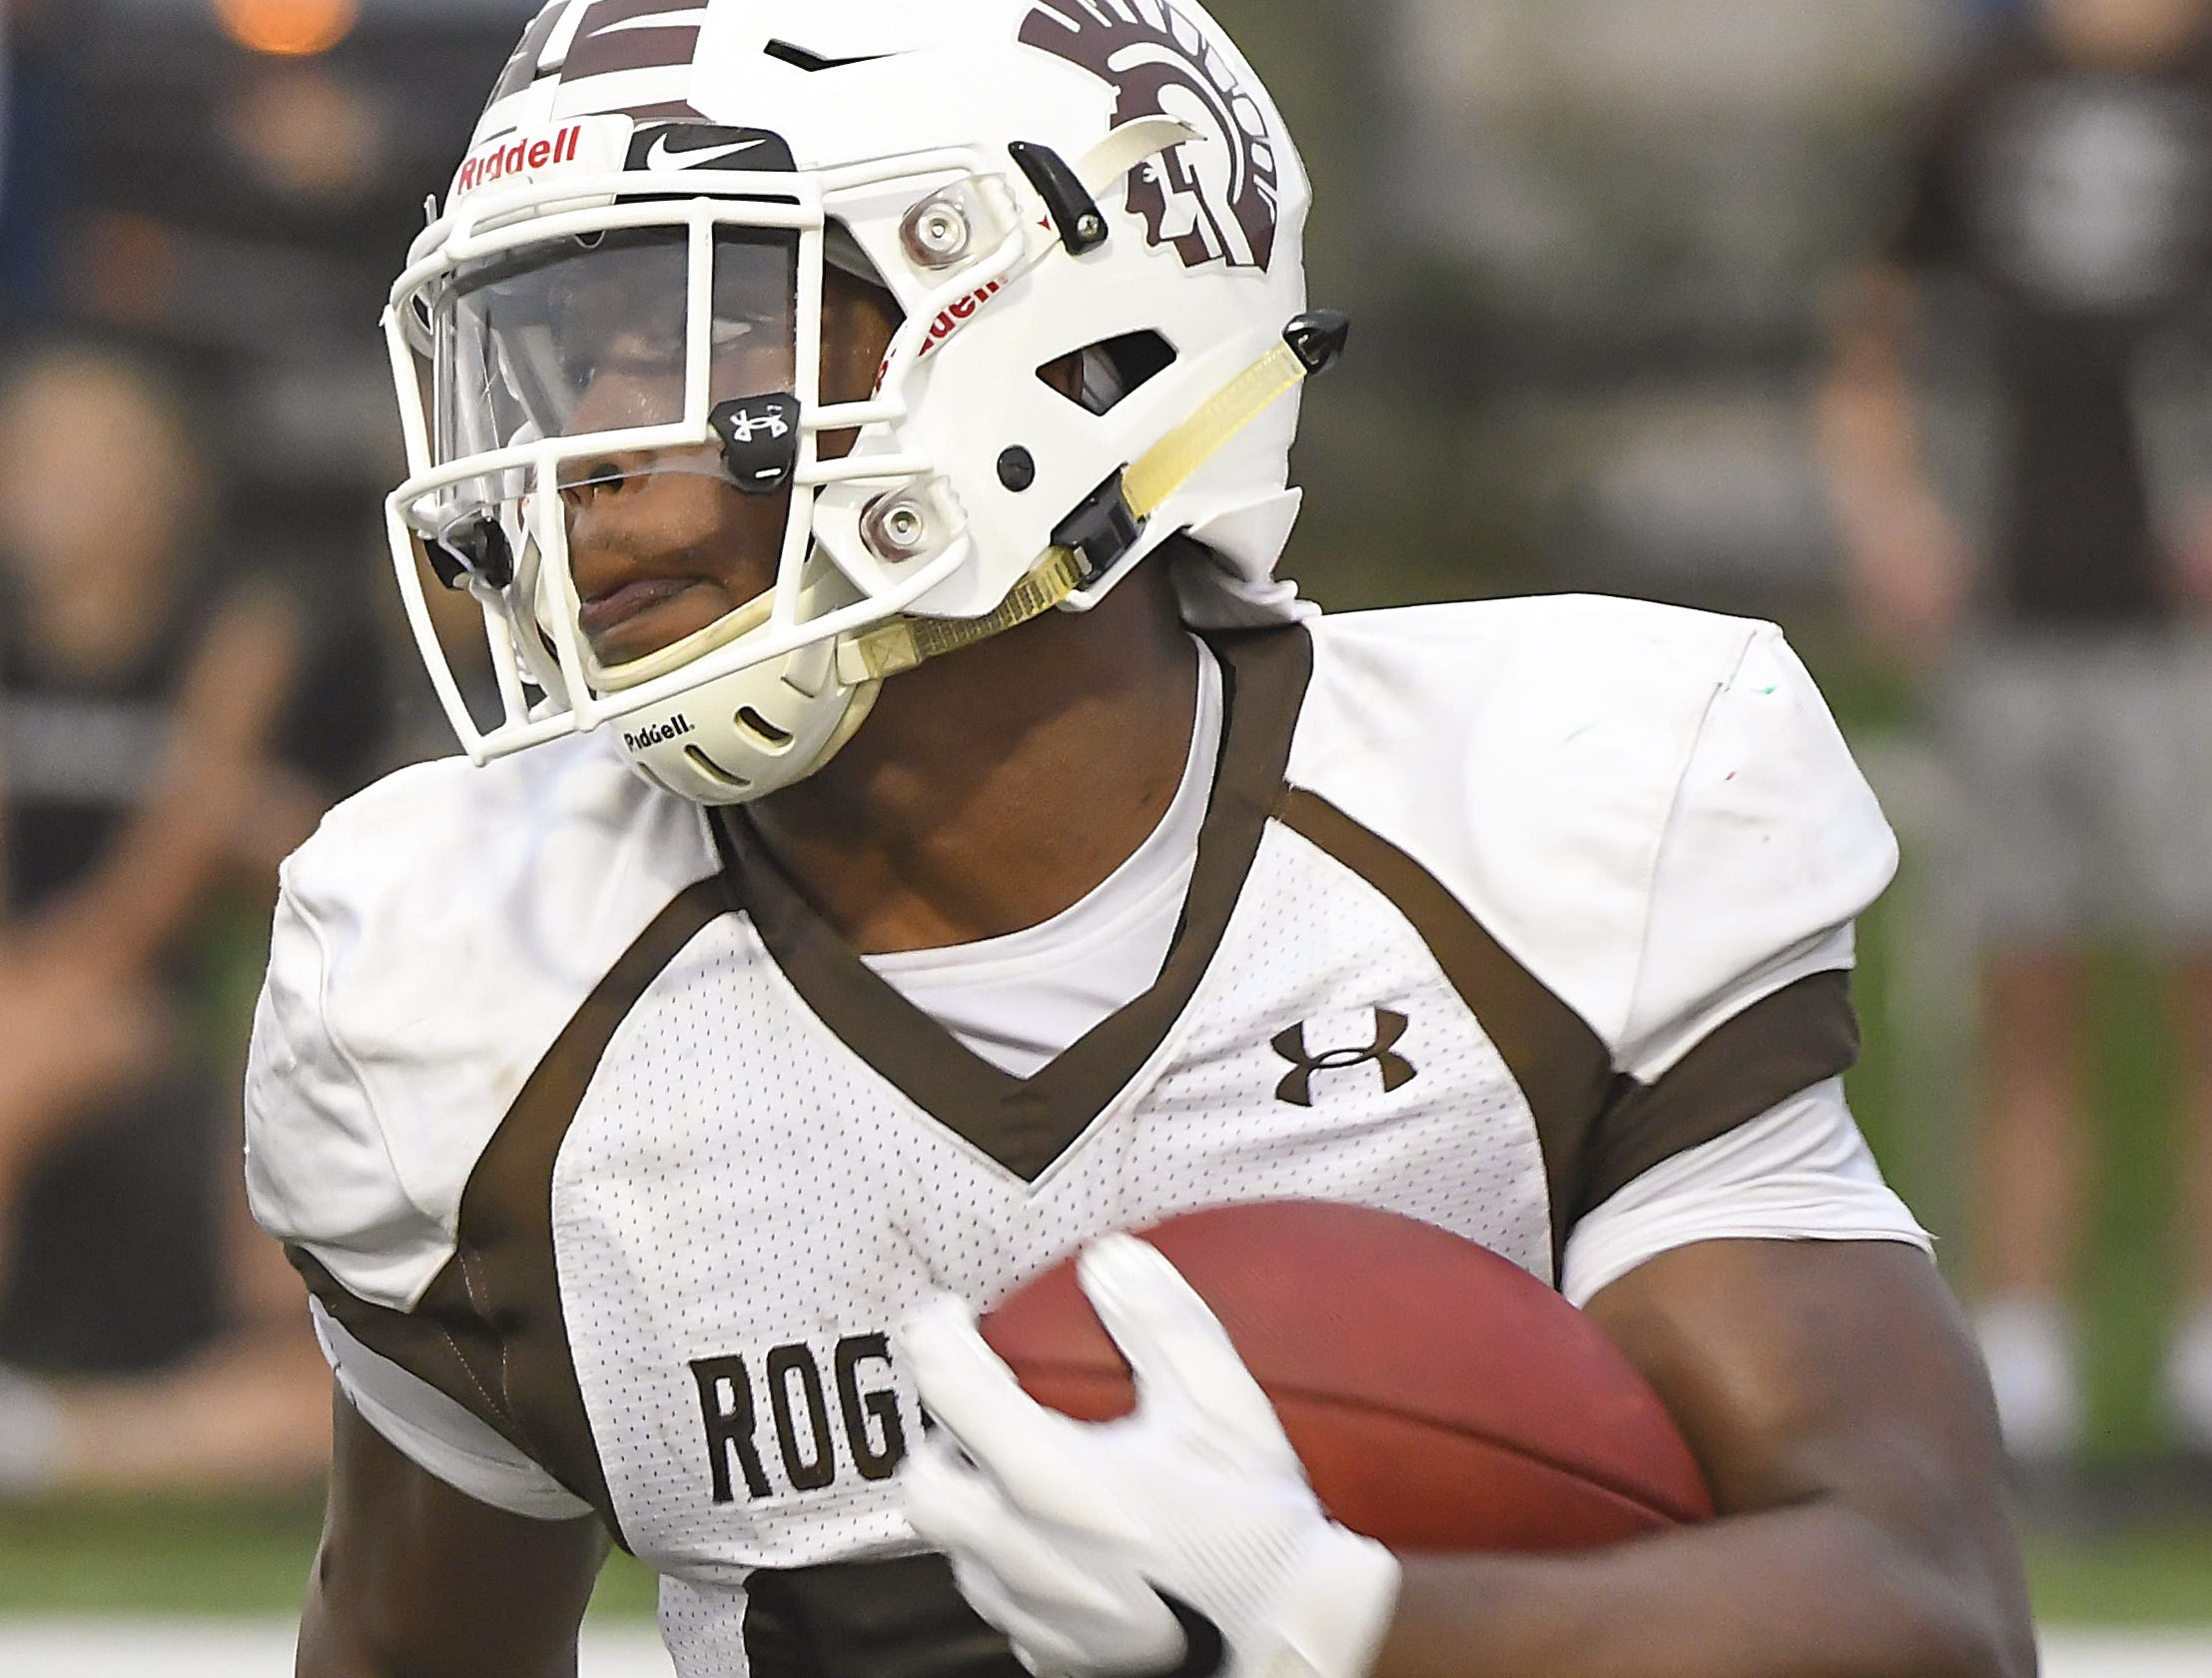 Roger Bacon running back Corey Kiner runs the ball against Western Hills, Western Hills High School, Aug. 31, 2018